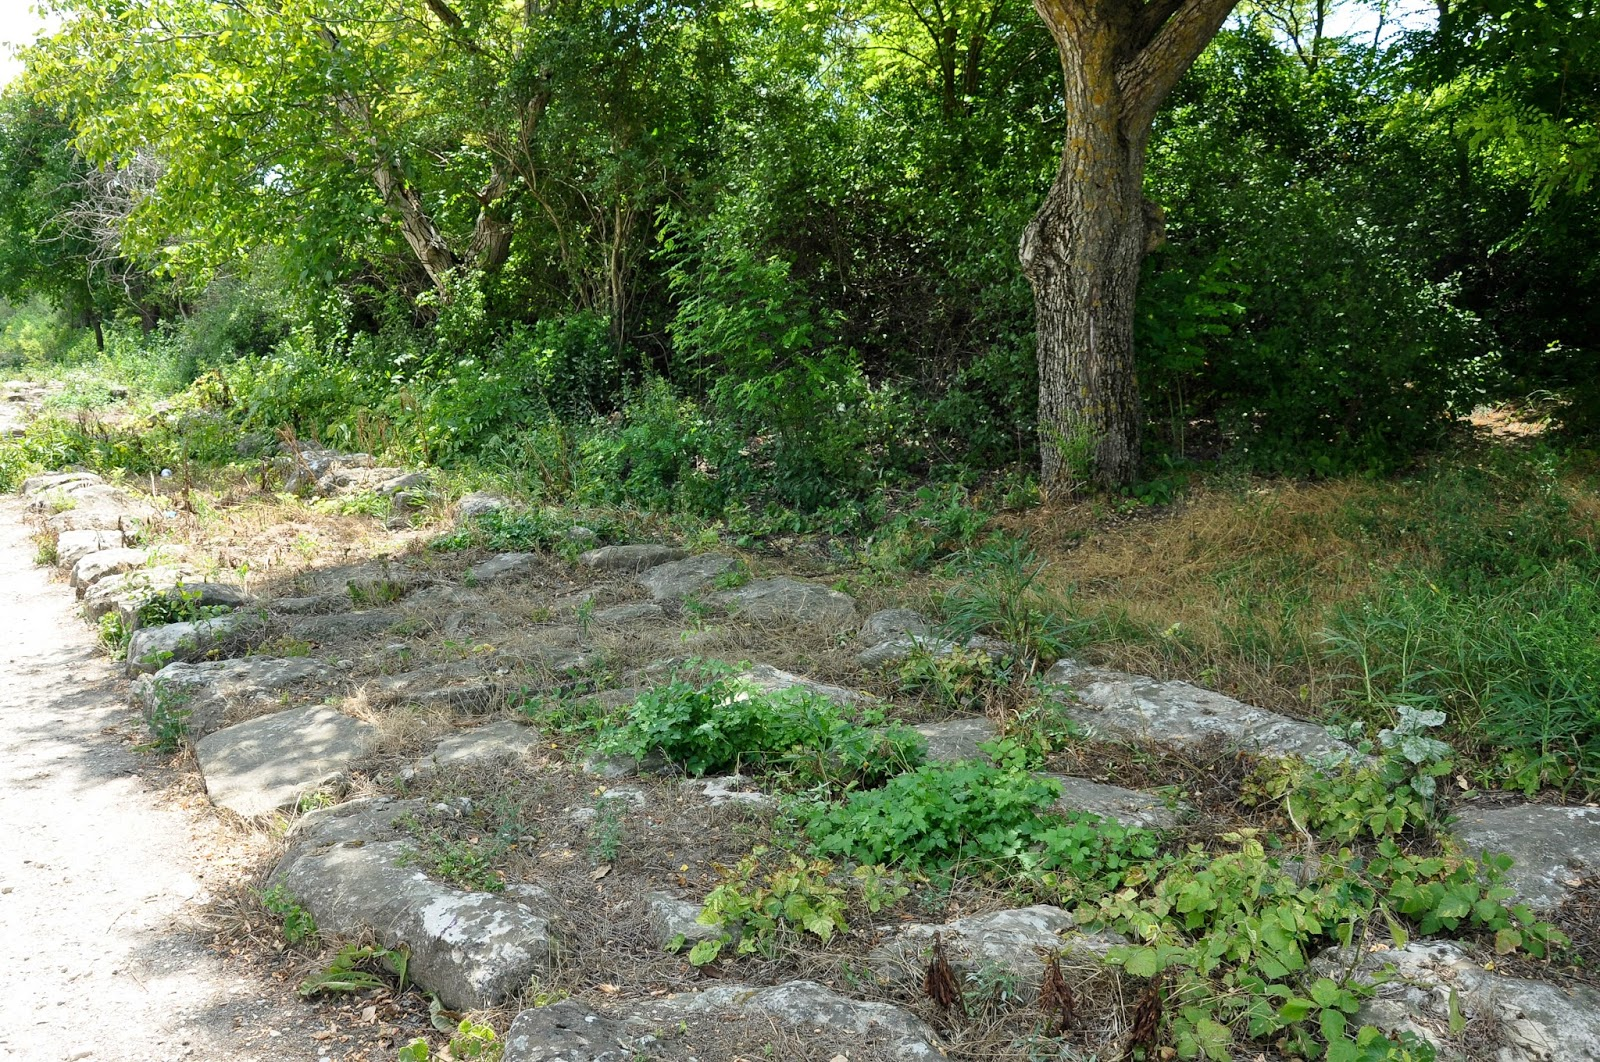 The remains of the wall leading up to the Basilica, Pliska, Bulgaria